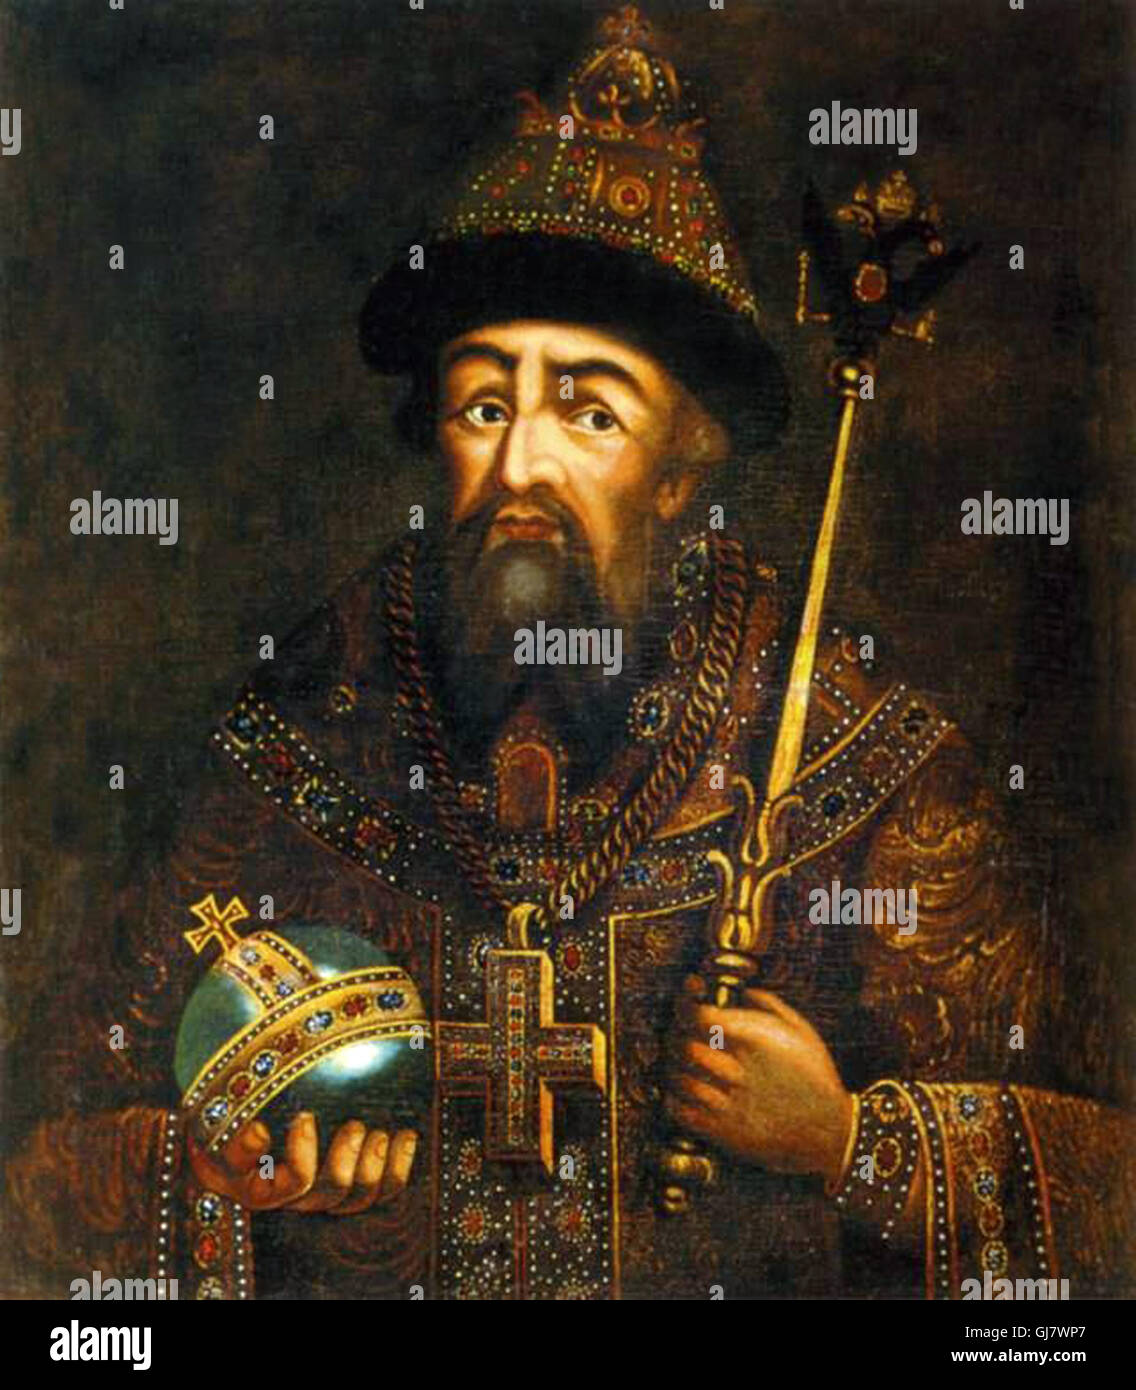 18th century depiction of Ivan the Terrible by Anonim. Ivan IV Vasilyevich 1530 – 1584), commonly known as Ivan - Stock Image